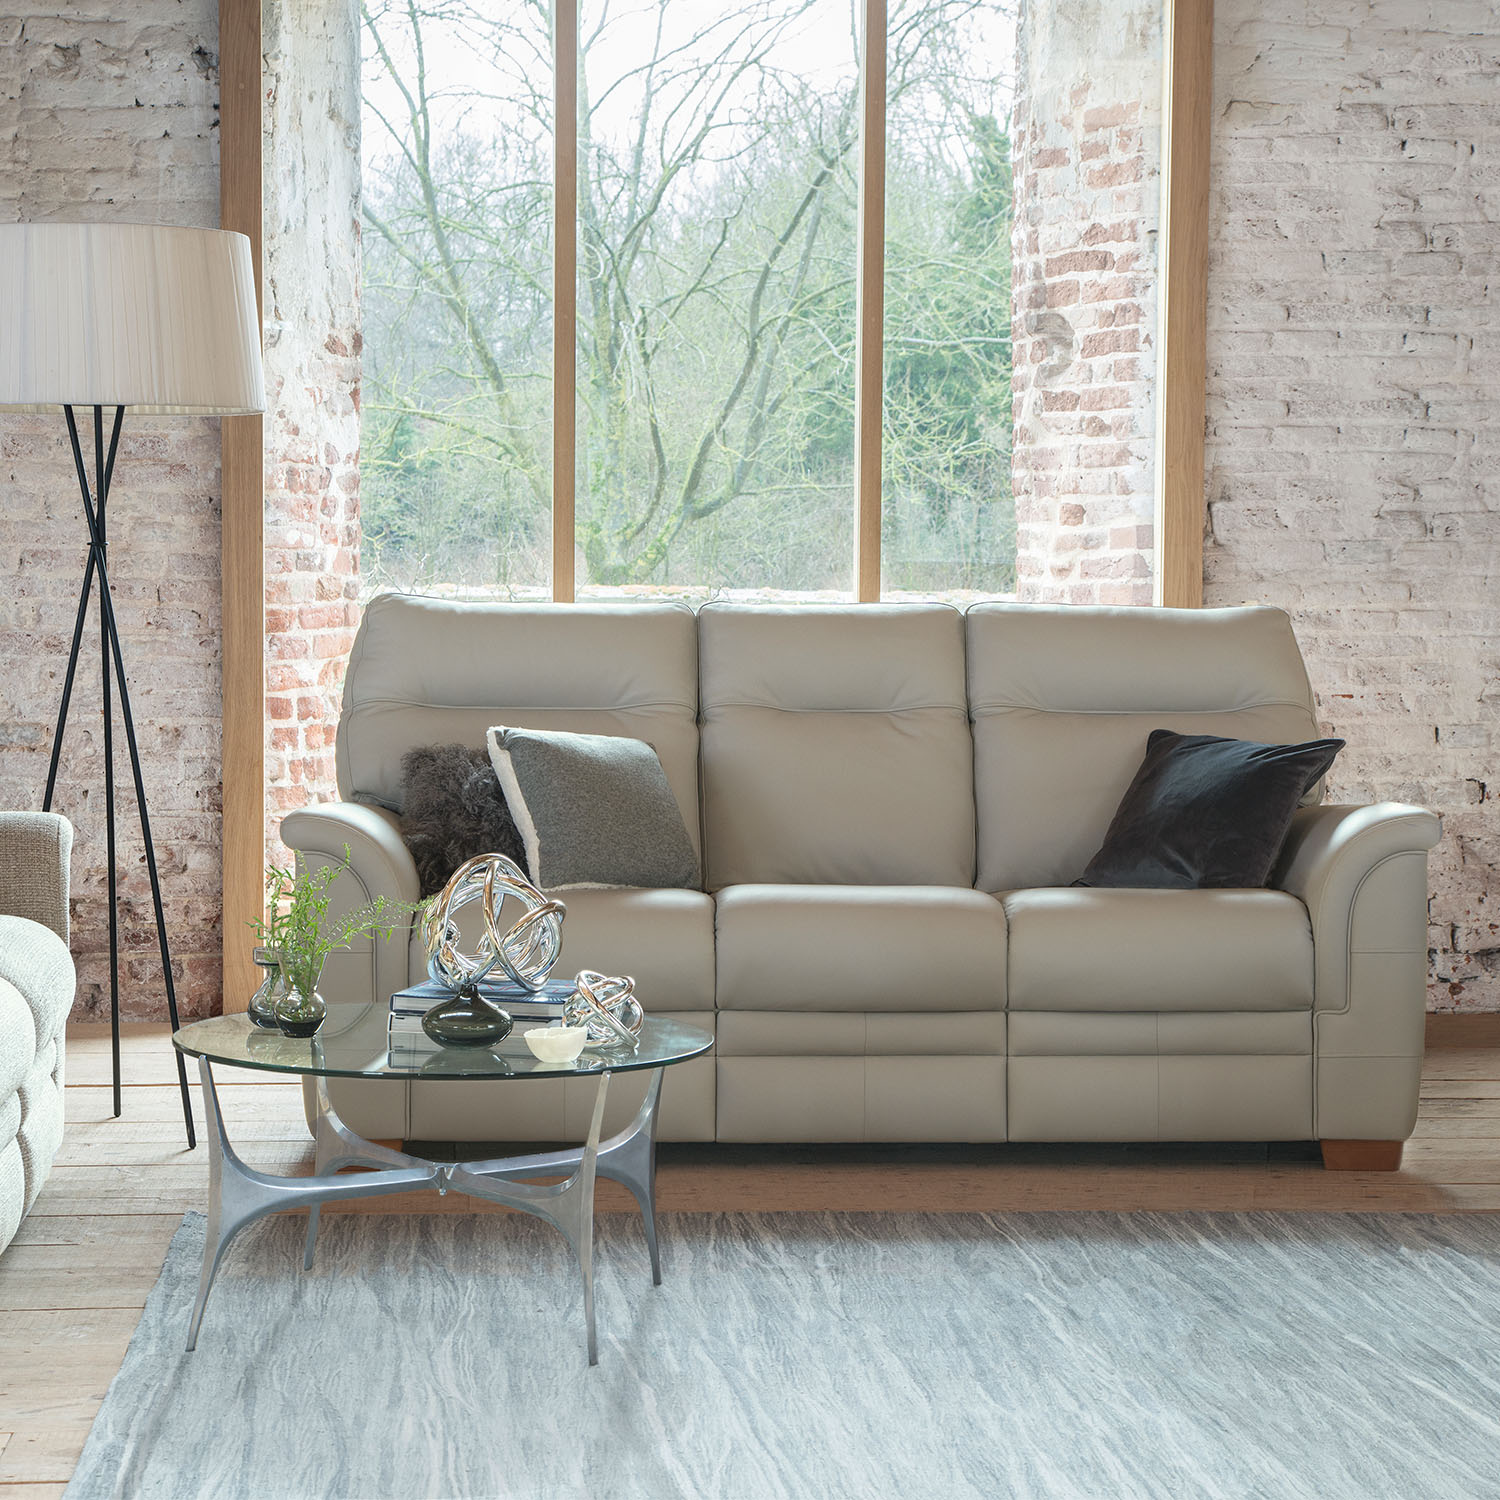 Image of Parker Knoll Hudson 3 Seater Leather Sofa